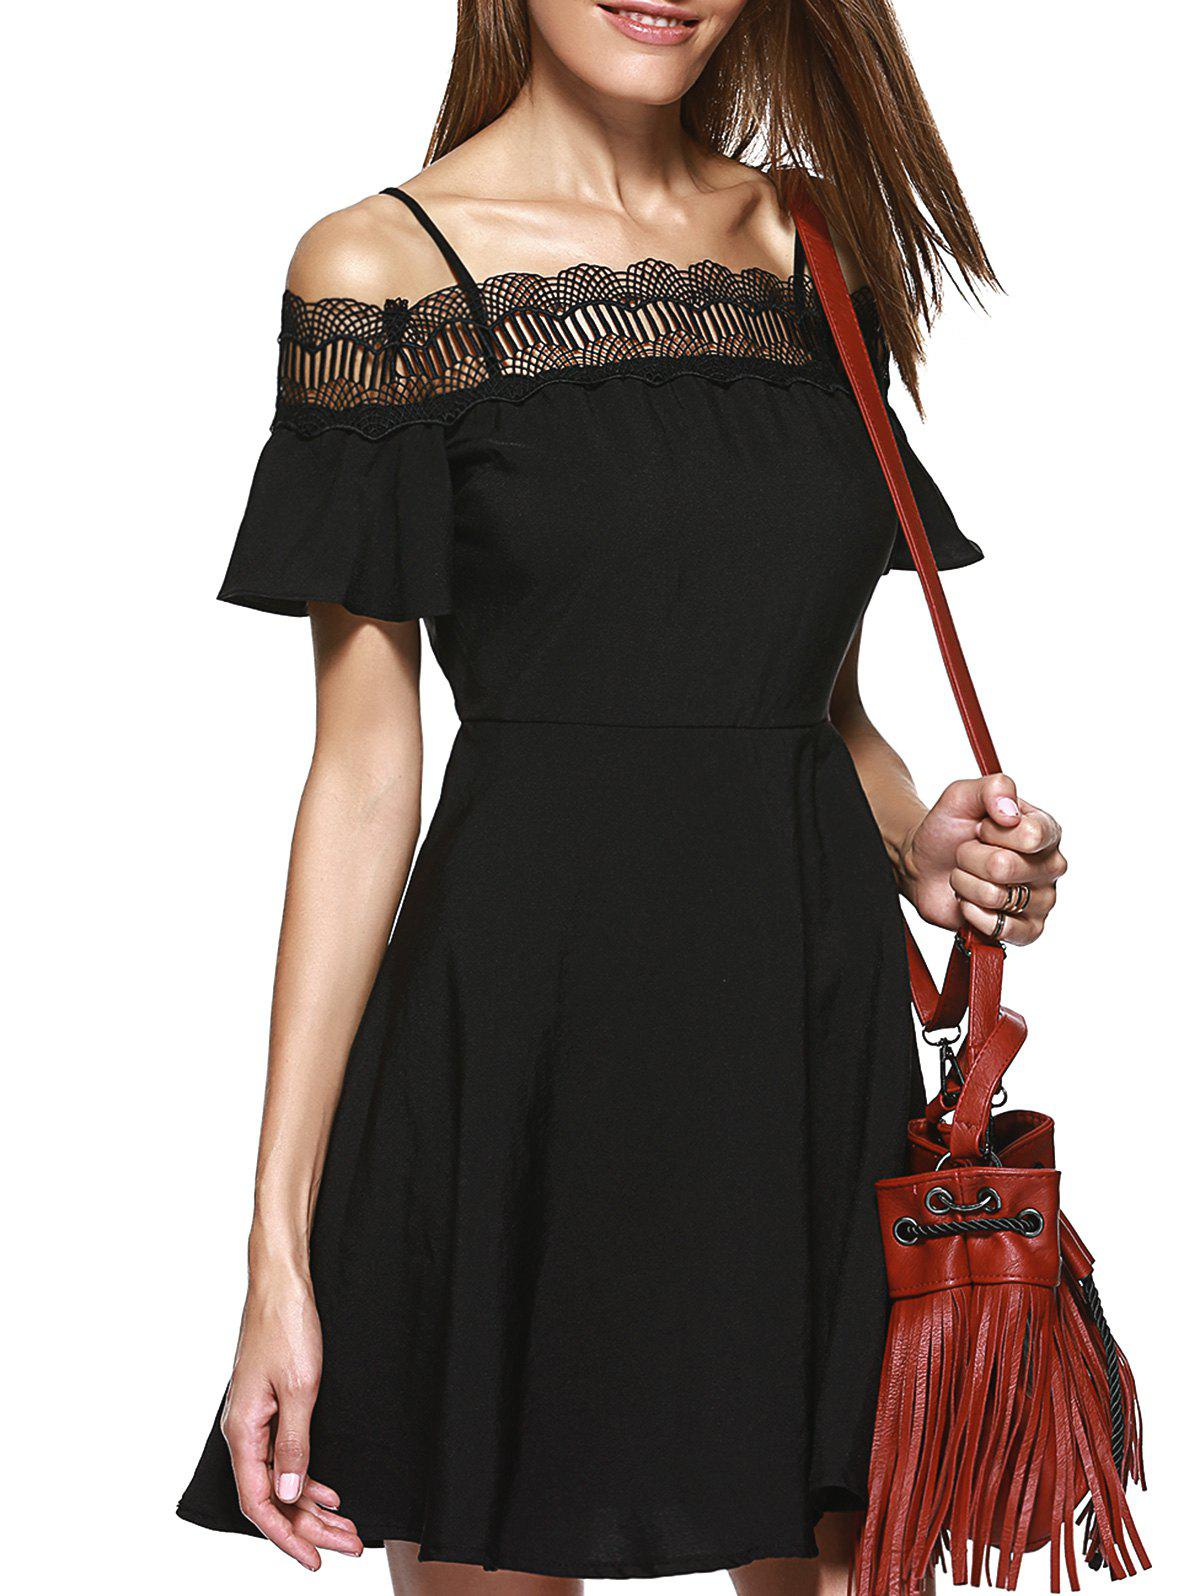 Stylish Women's Spaghetti Strap Lace Panelled A-line Cold Shoulder Dress - BLACK L